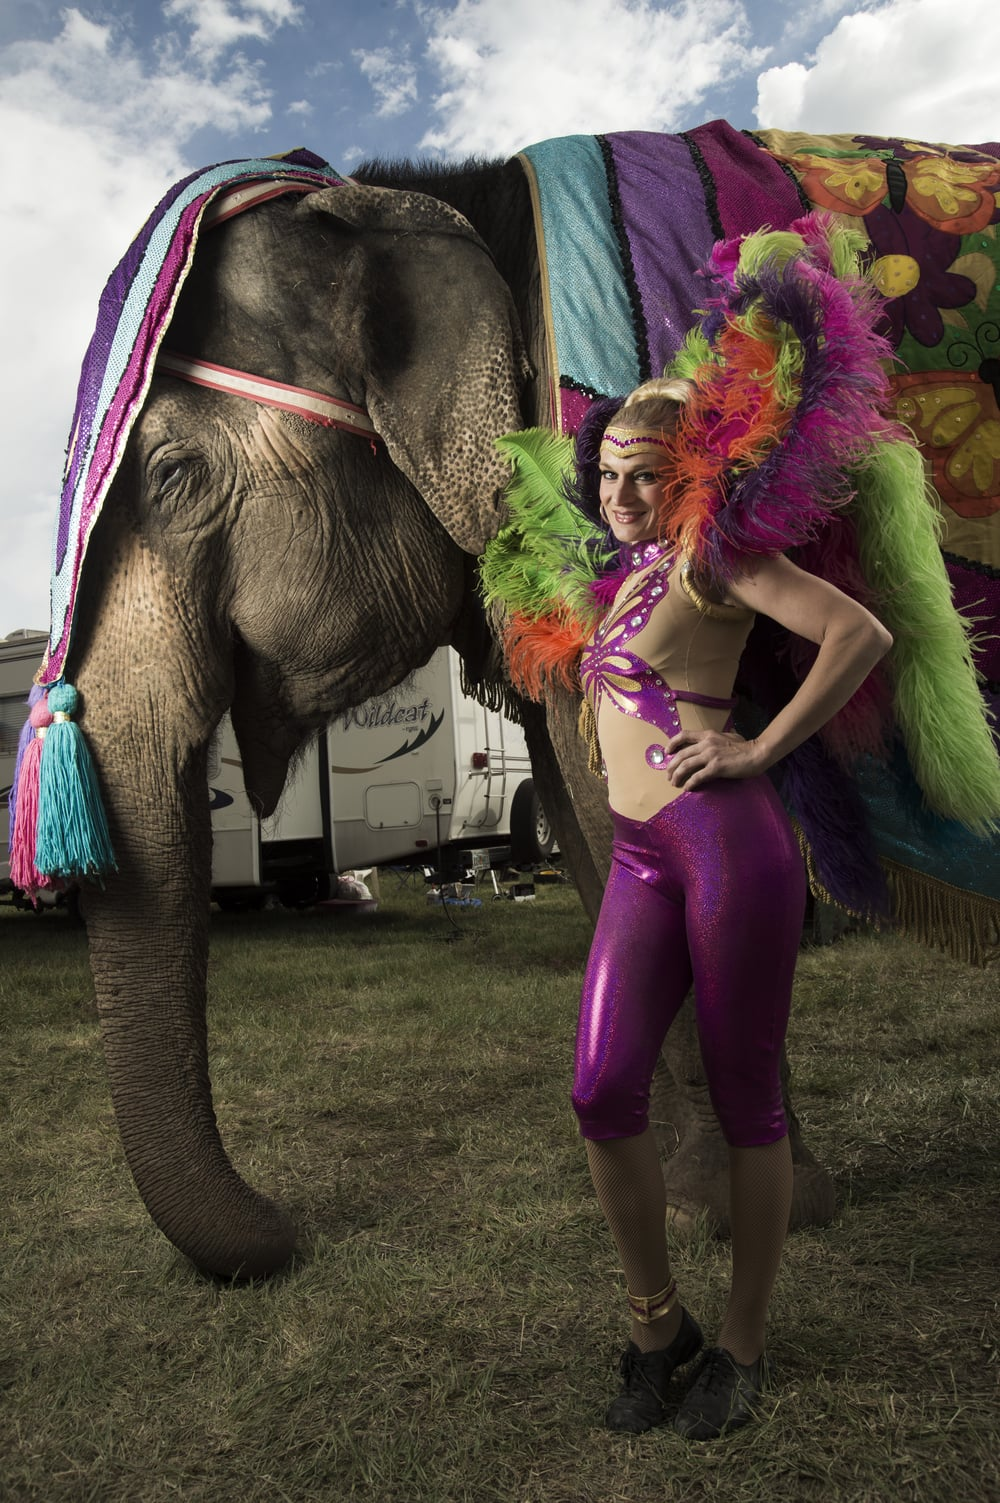 Portrait of a female circus performer with an elephant